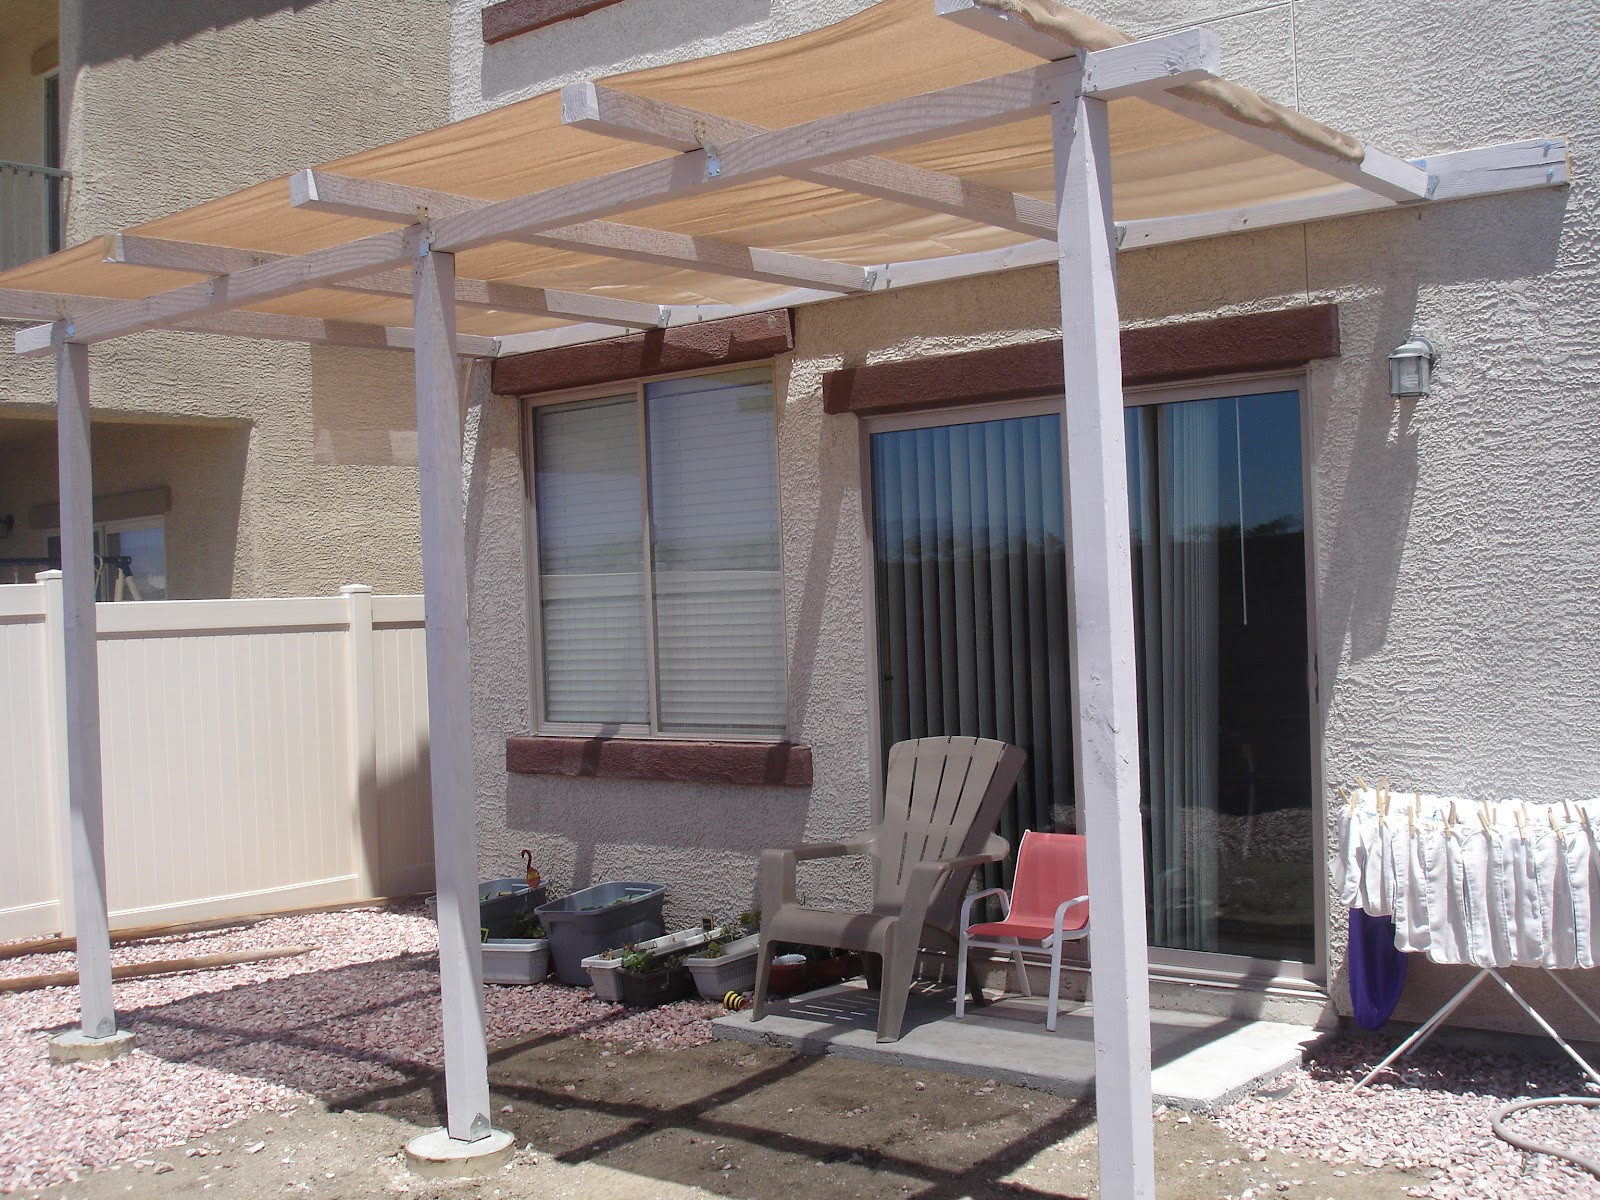 Best ideas about Diy Patio Covers . Save or Pin Alex Haralson Update Our DIY Patio Cover Now.